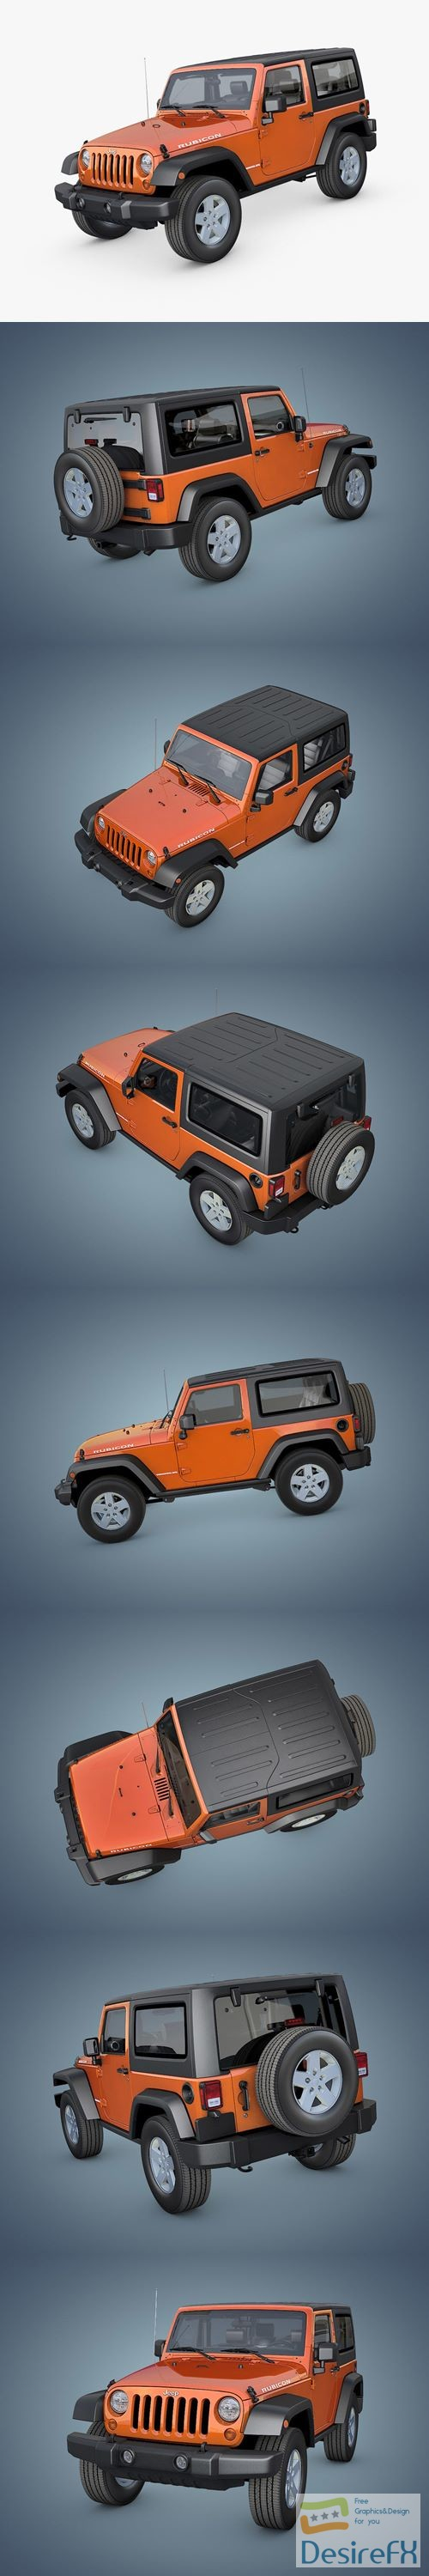 3d-models - Jeep Wrangler Rubicon 2007 3D Model